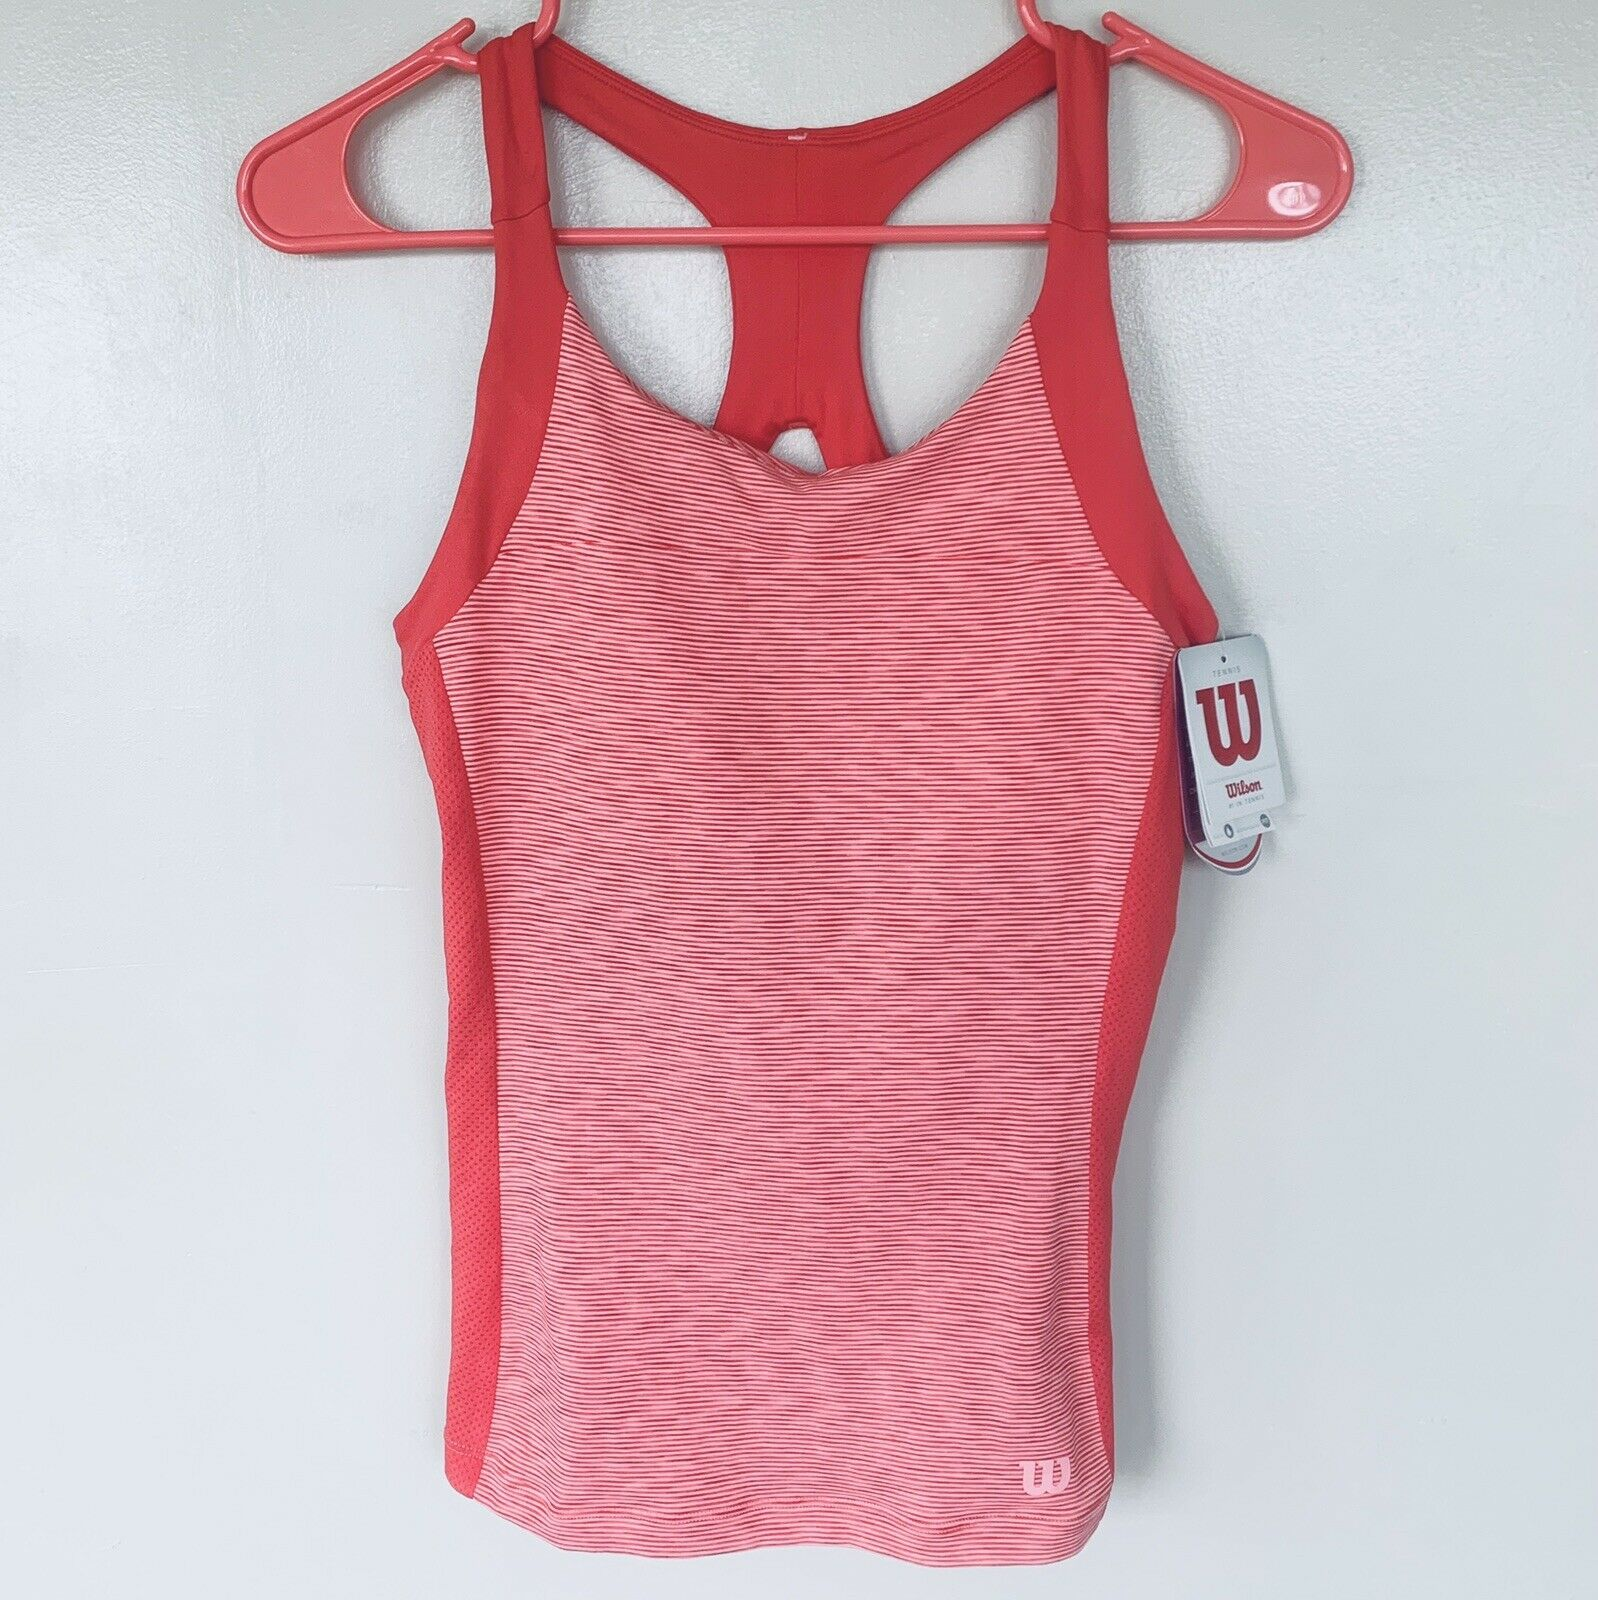 NEW with Tags WILSON Women's Striated Racerback Tank Top Tennis Gym ~ Small